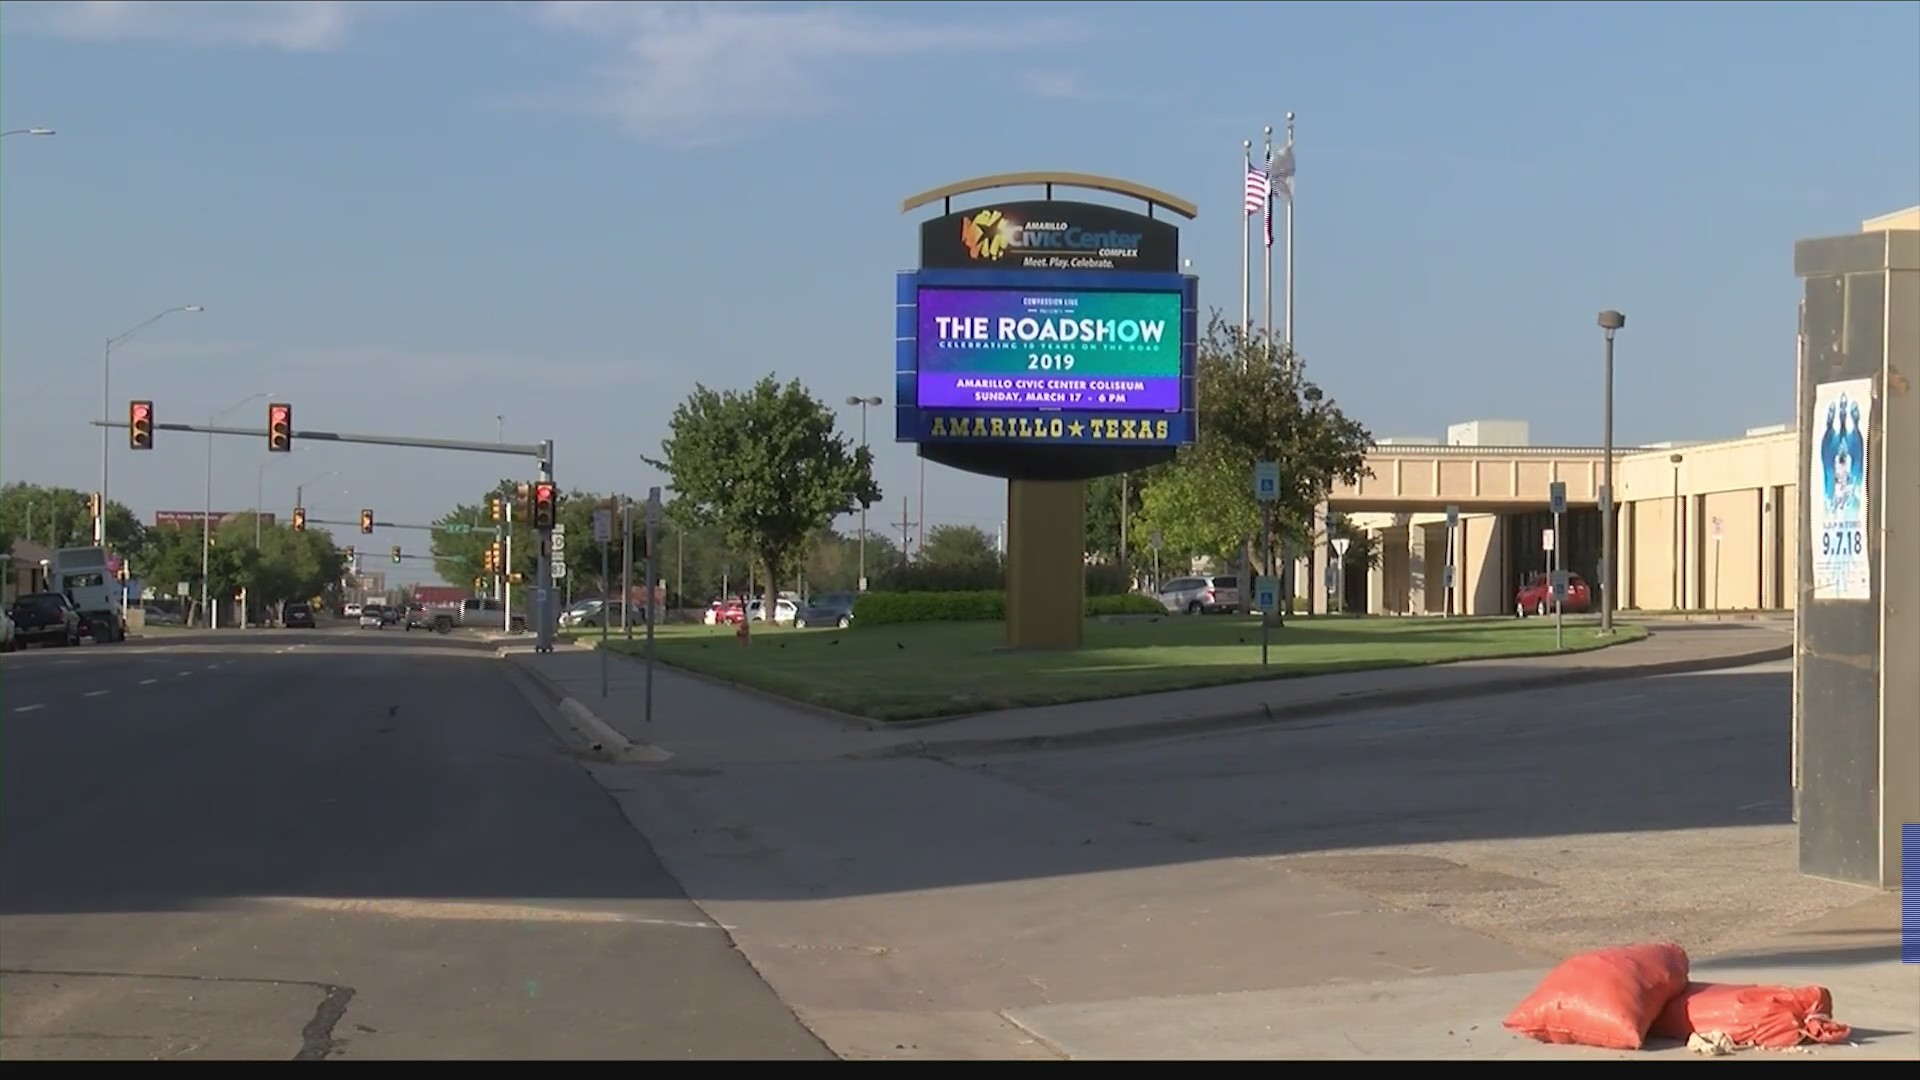 City Council Putting Together Citizen Committee to Discuss Potential Civic Center Improvements